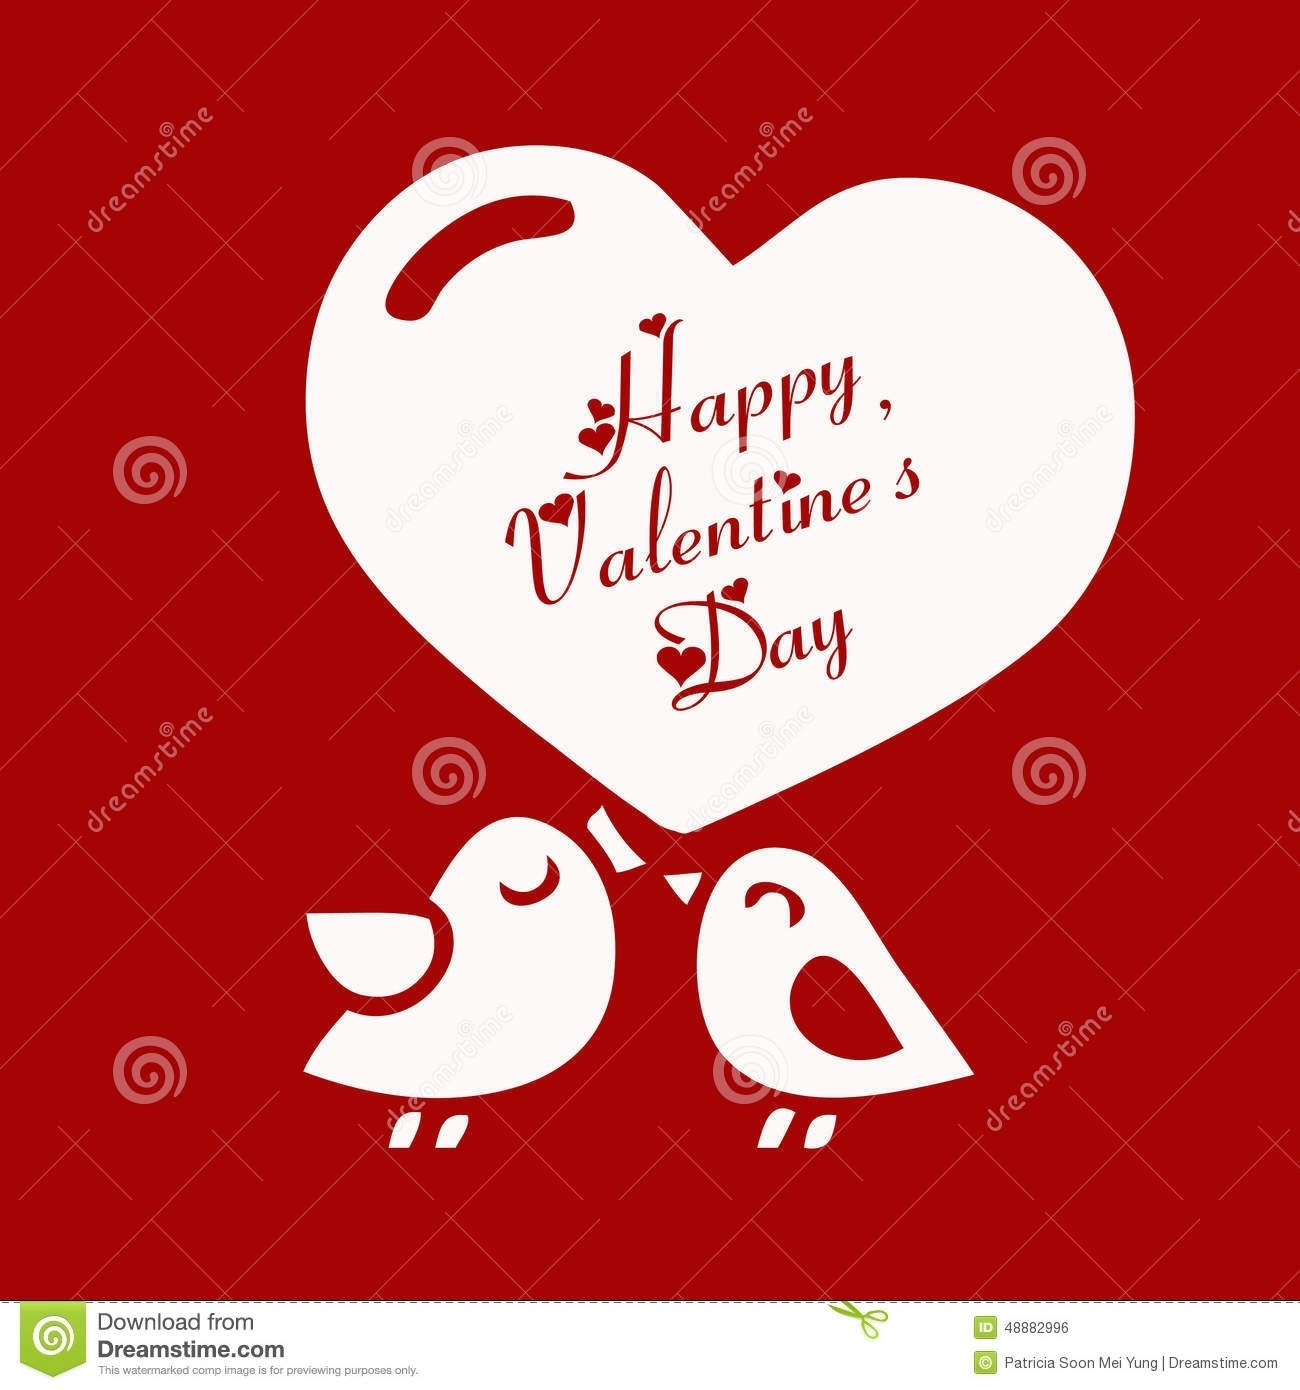 10 Nice Valentines Day Ideas For New Couples happy valentines day love beautiful card with cute love couple birds